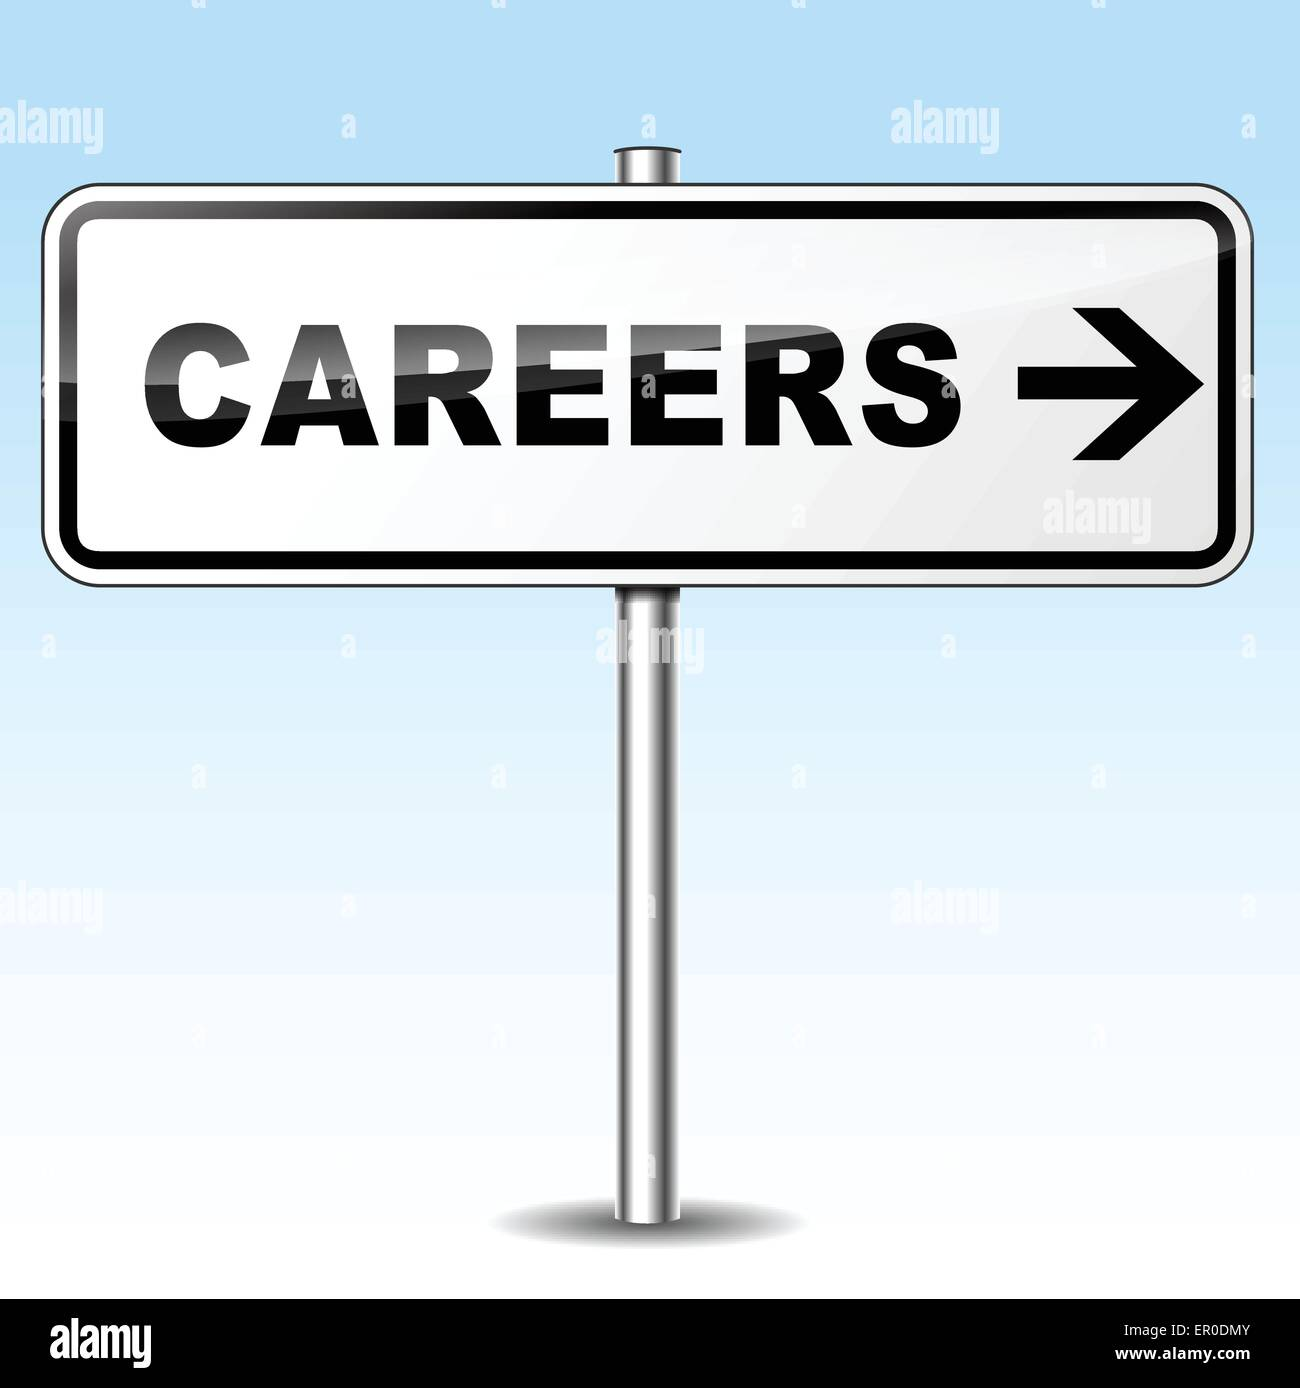 Illustration of careers sign on sky background - Stock Vector